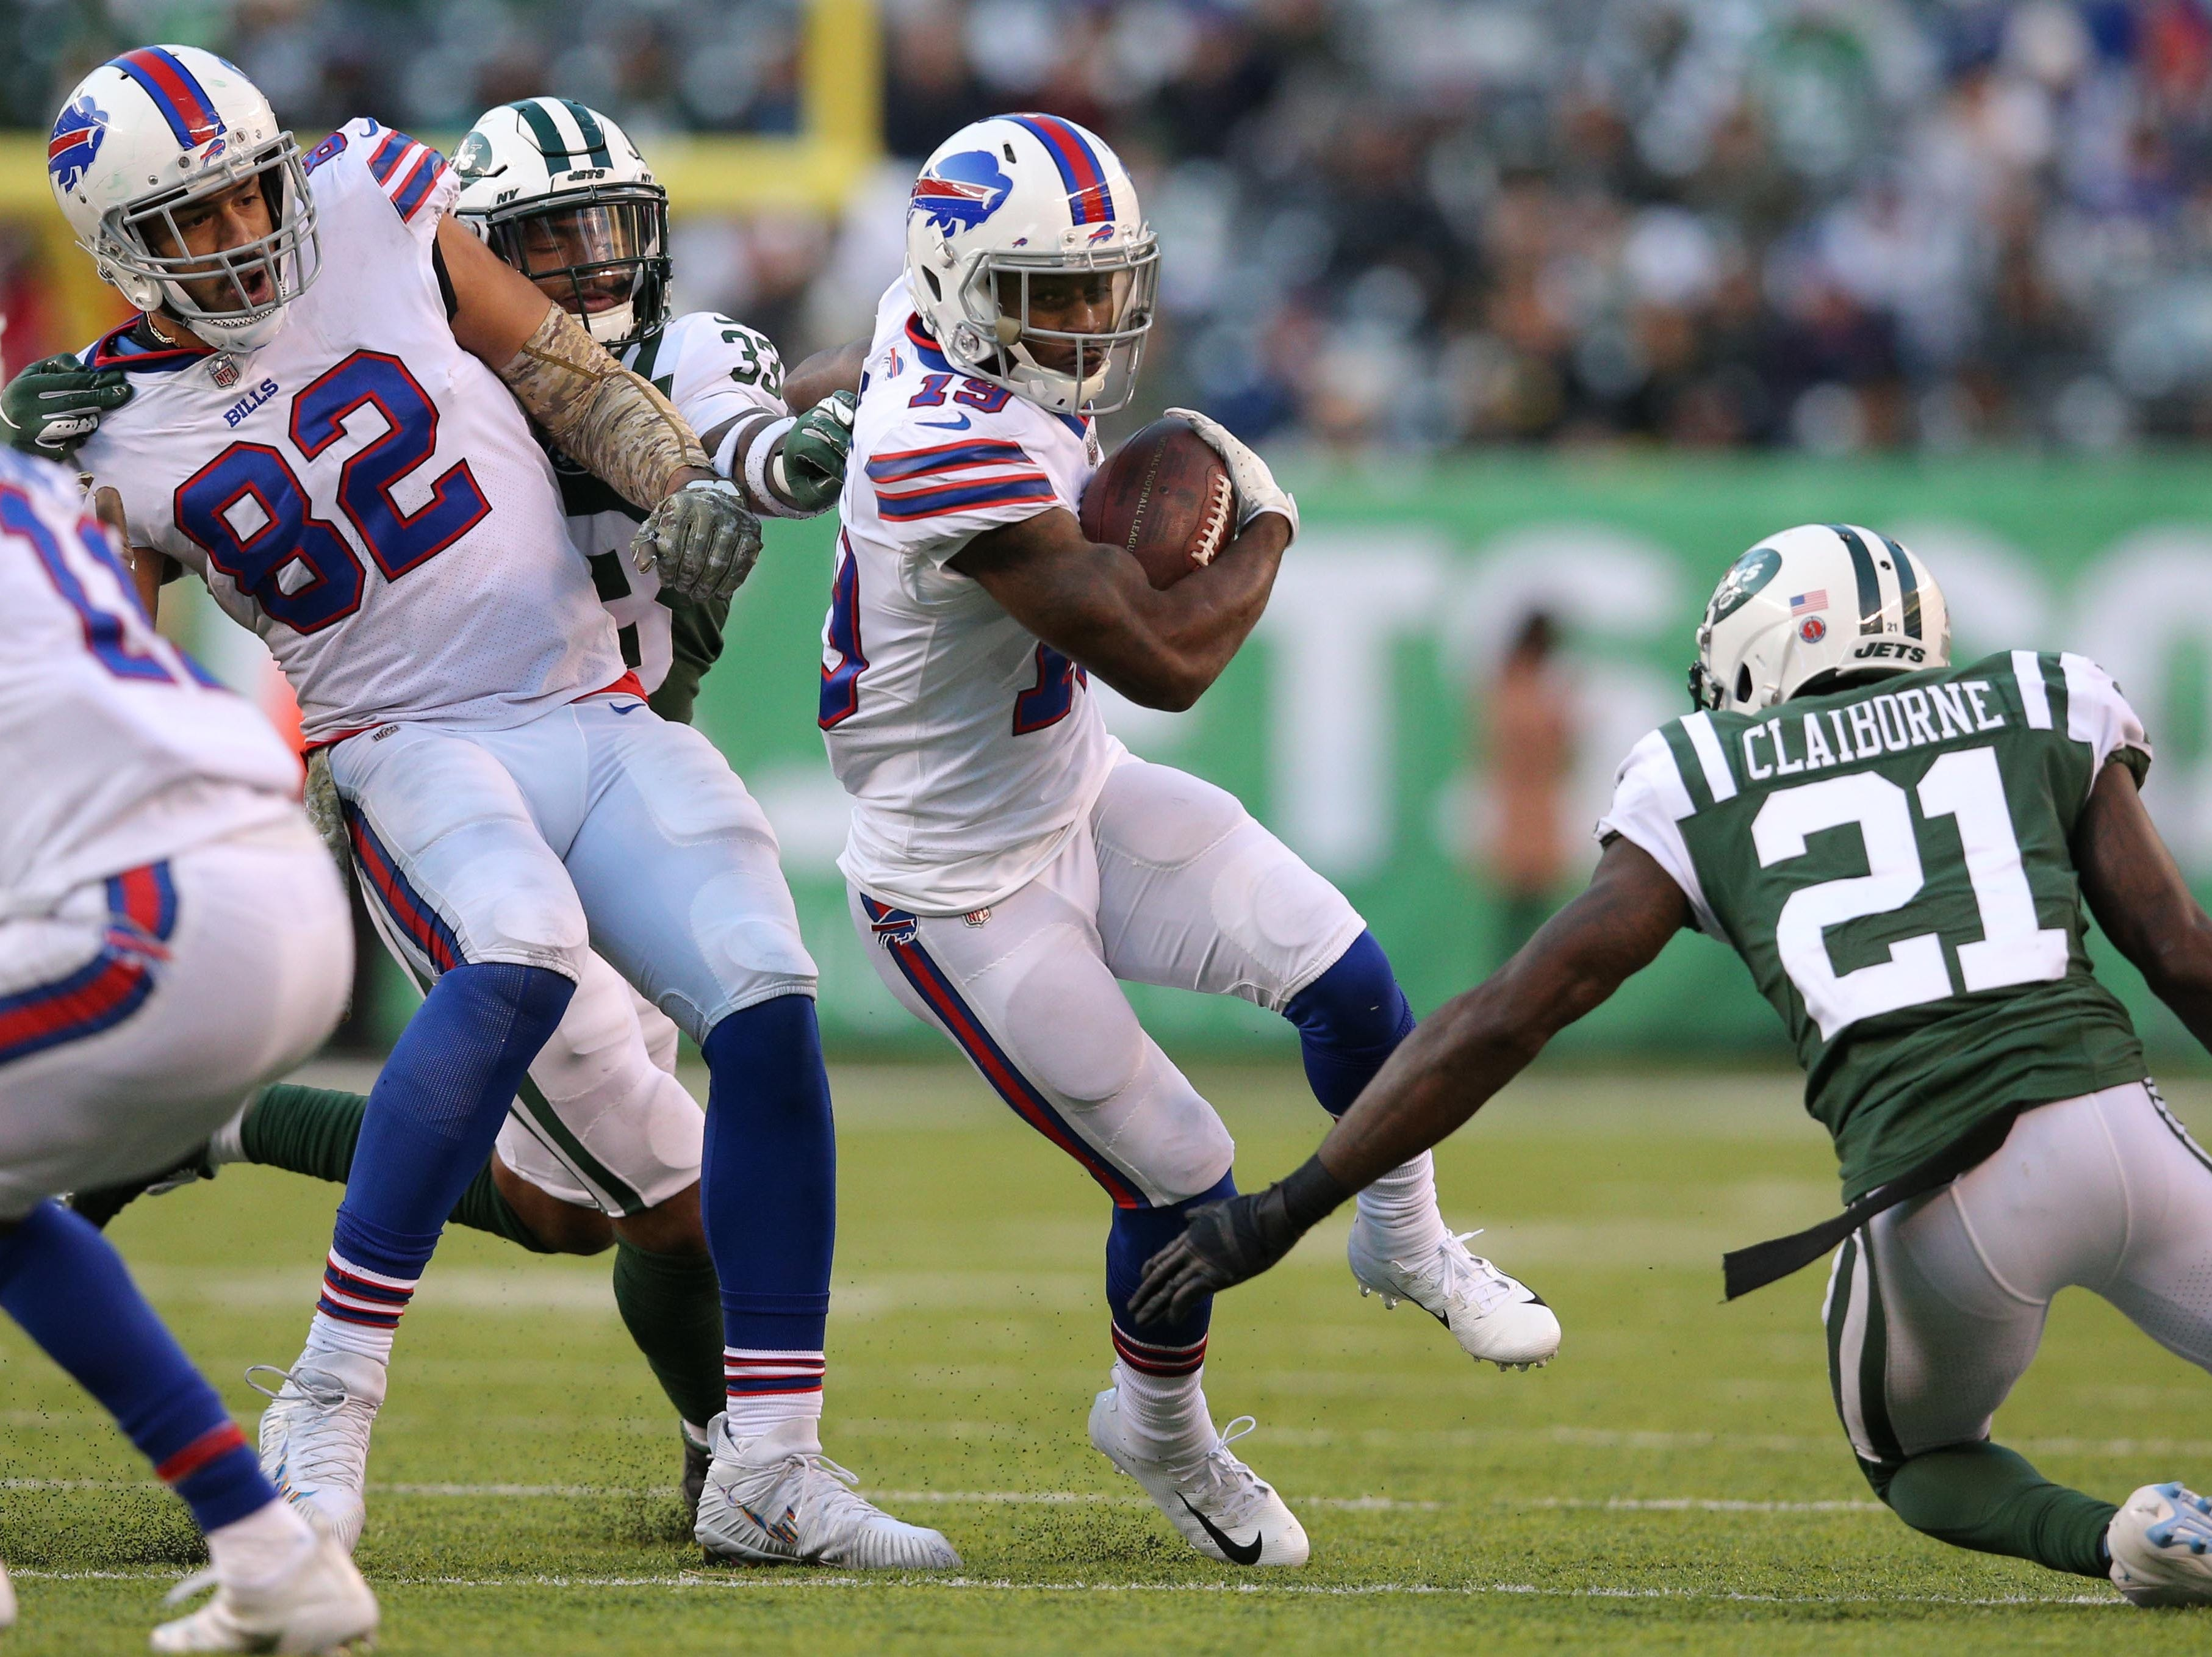 Nov 11, 2018; East Rutherford, NJ, USA; Buffalo Bills wide receiver Isaiah McKenzie (19) runs with the ball against New York Jets safety Jamal Adams (33) and New York Jets cornerback Morris Claiborne (21) during the fourth quarter at MetLife Stadium. Mandatory Credit: Brad Penner-USA TODAY Sports